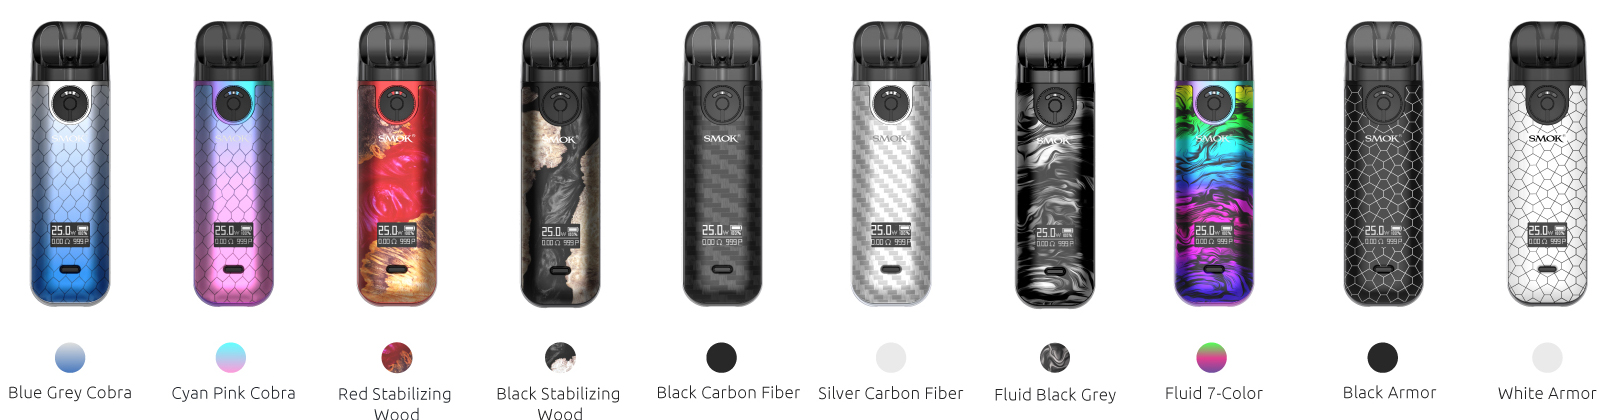 Several SMOK Novo 4 pod devices in a variety of colors and designs.